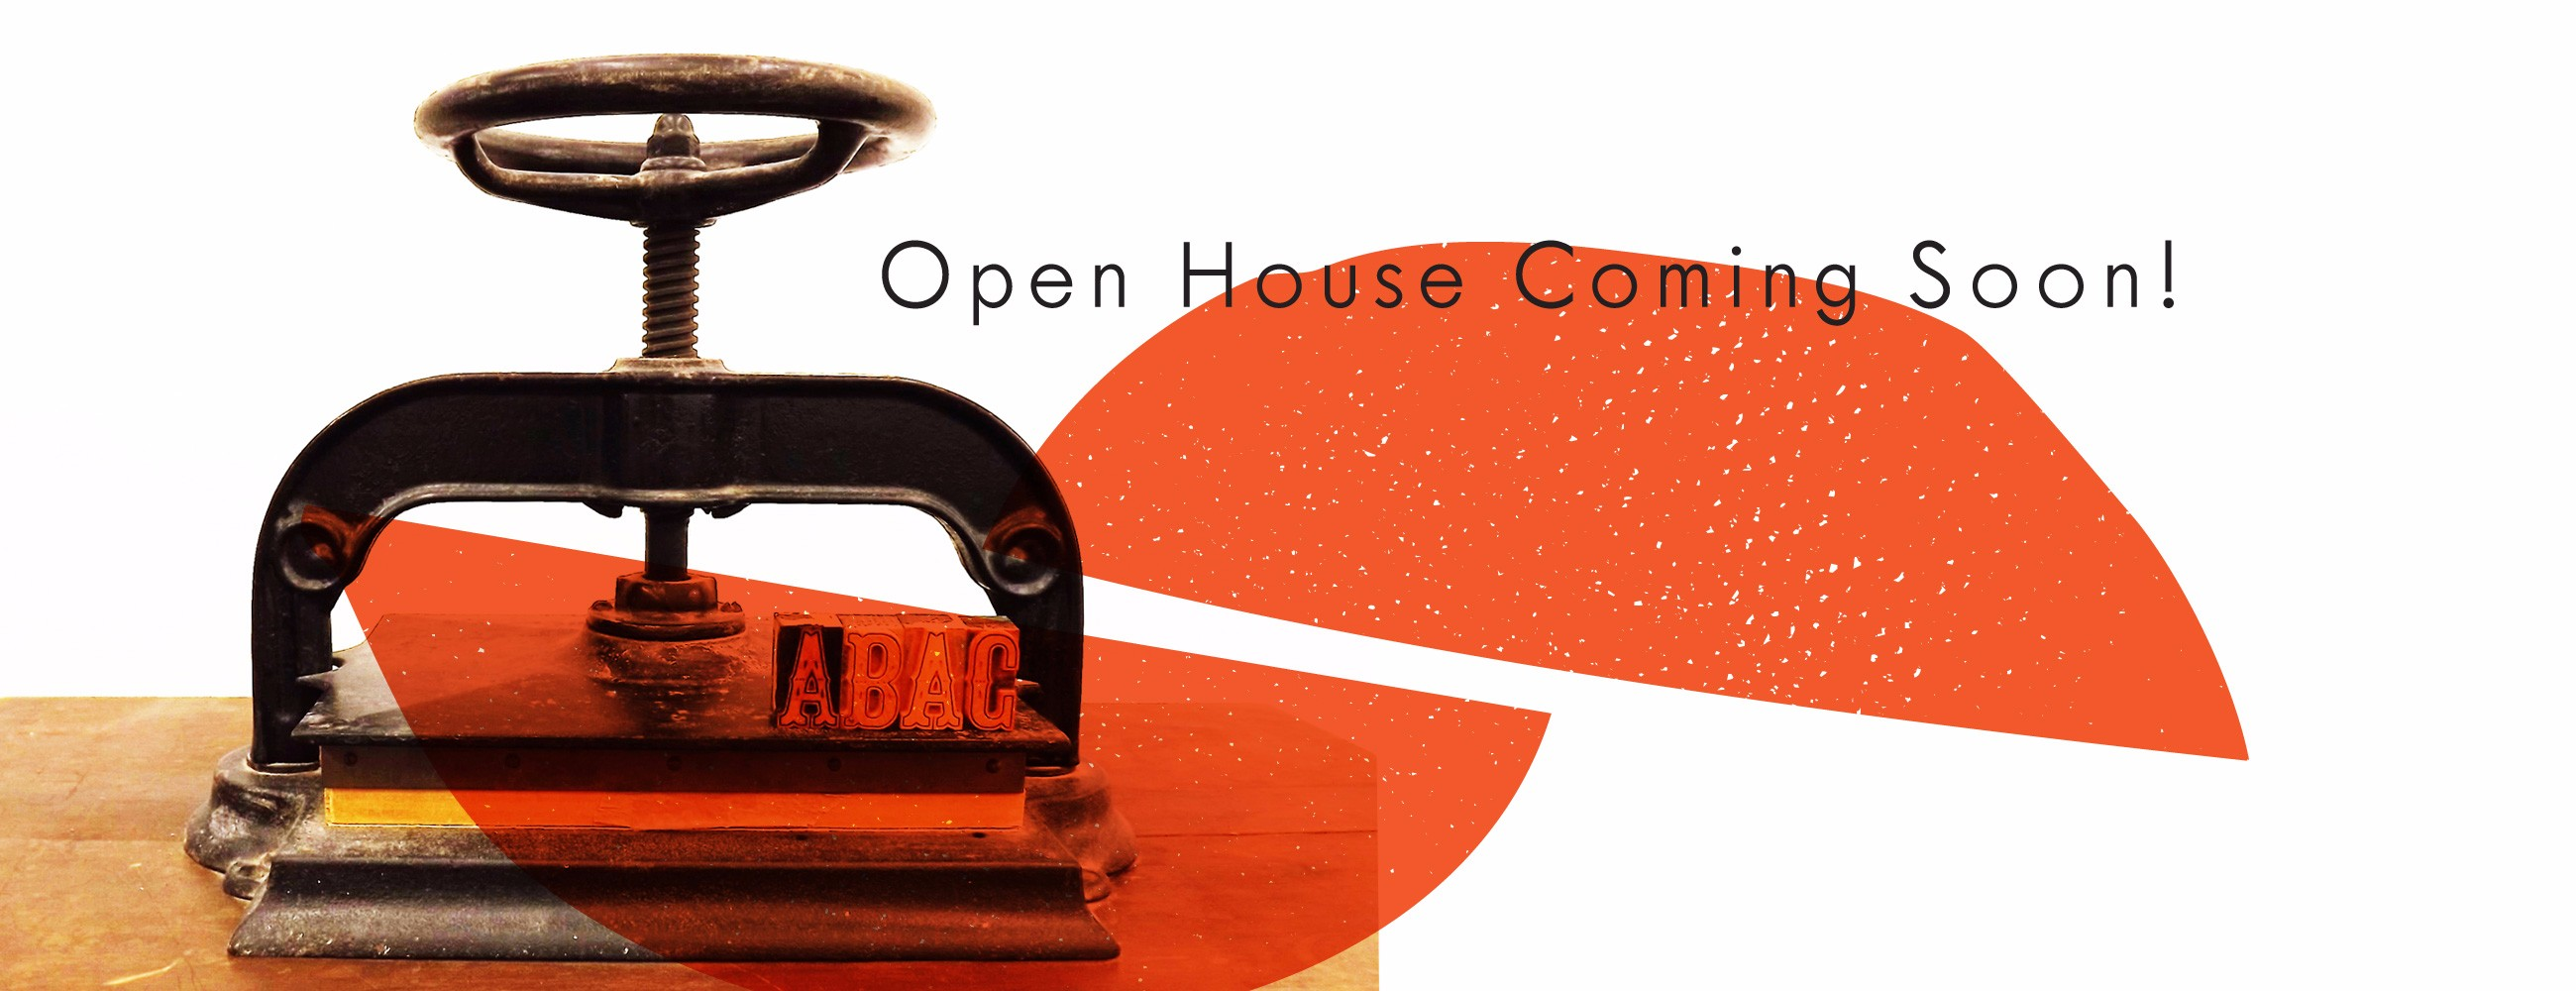 Open House on September 12!